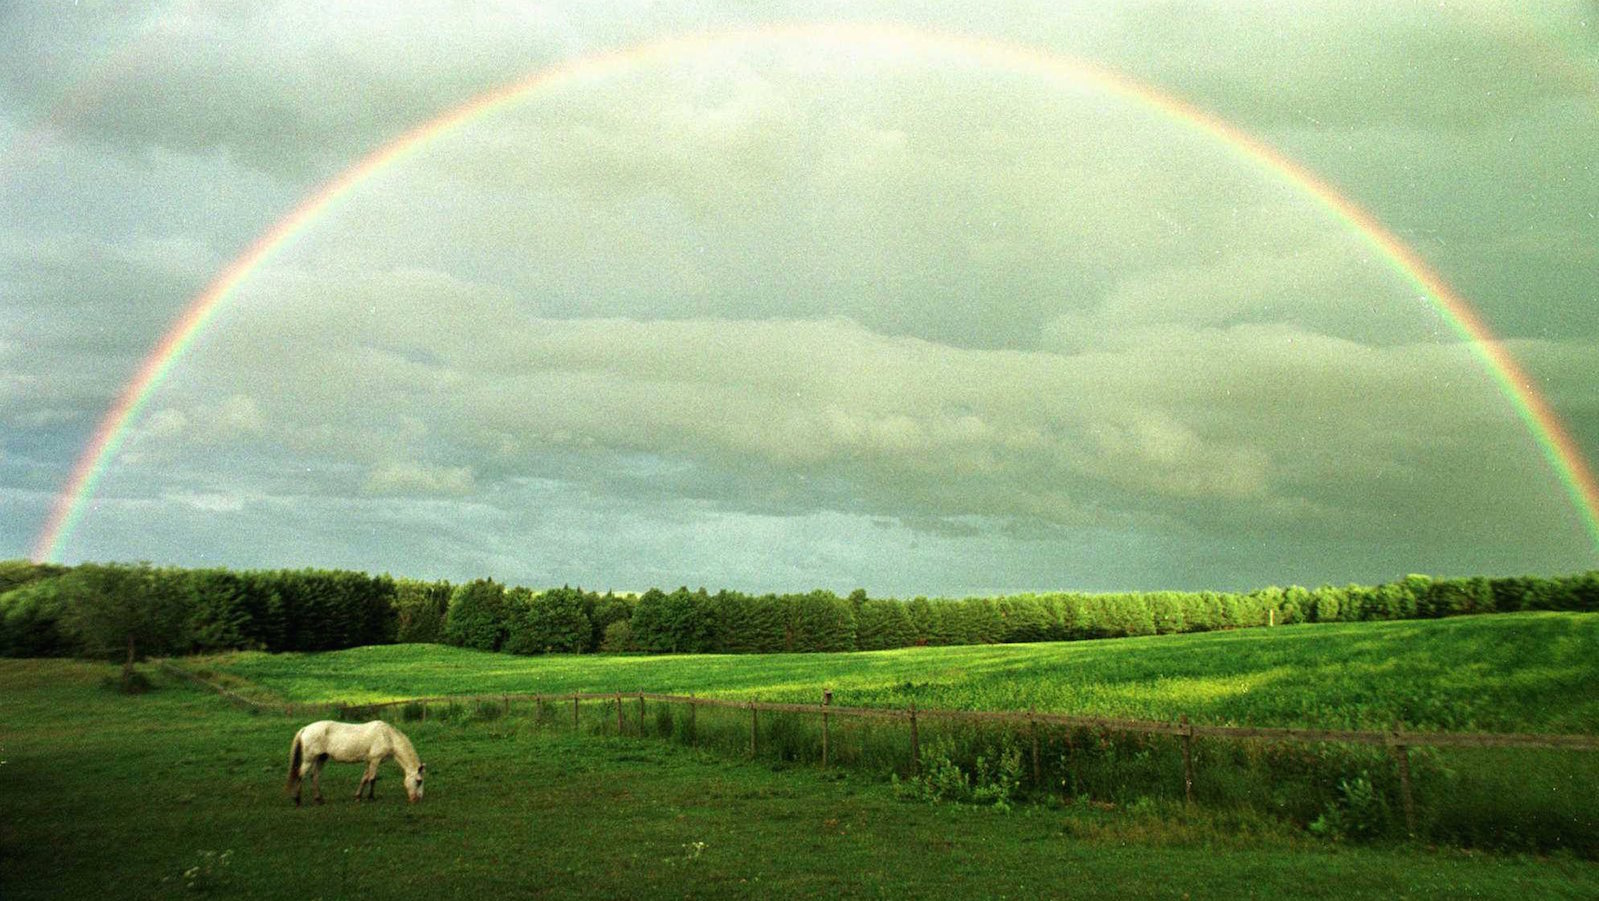 A horse grazes in a field in Calais, Vt., July 18, 1997 under the arch of a rainbow.